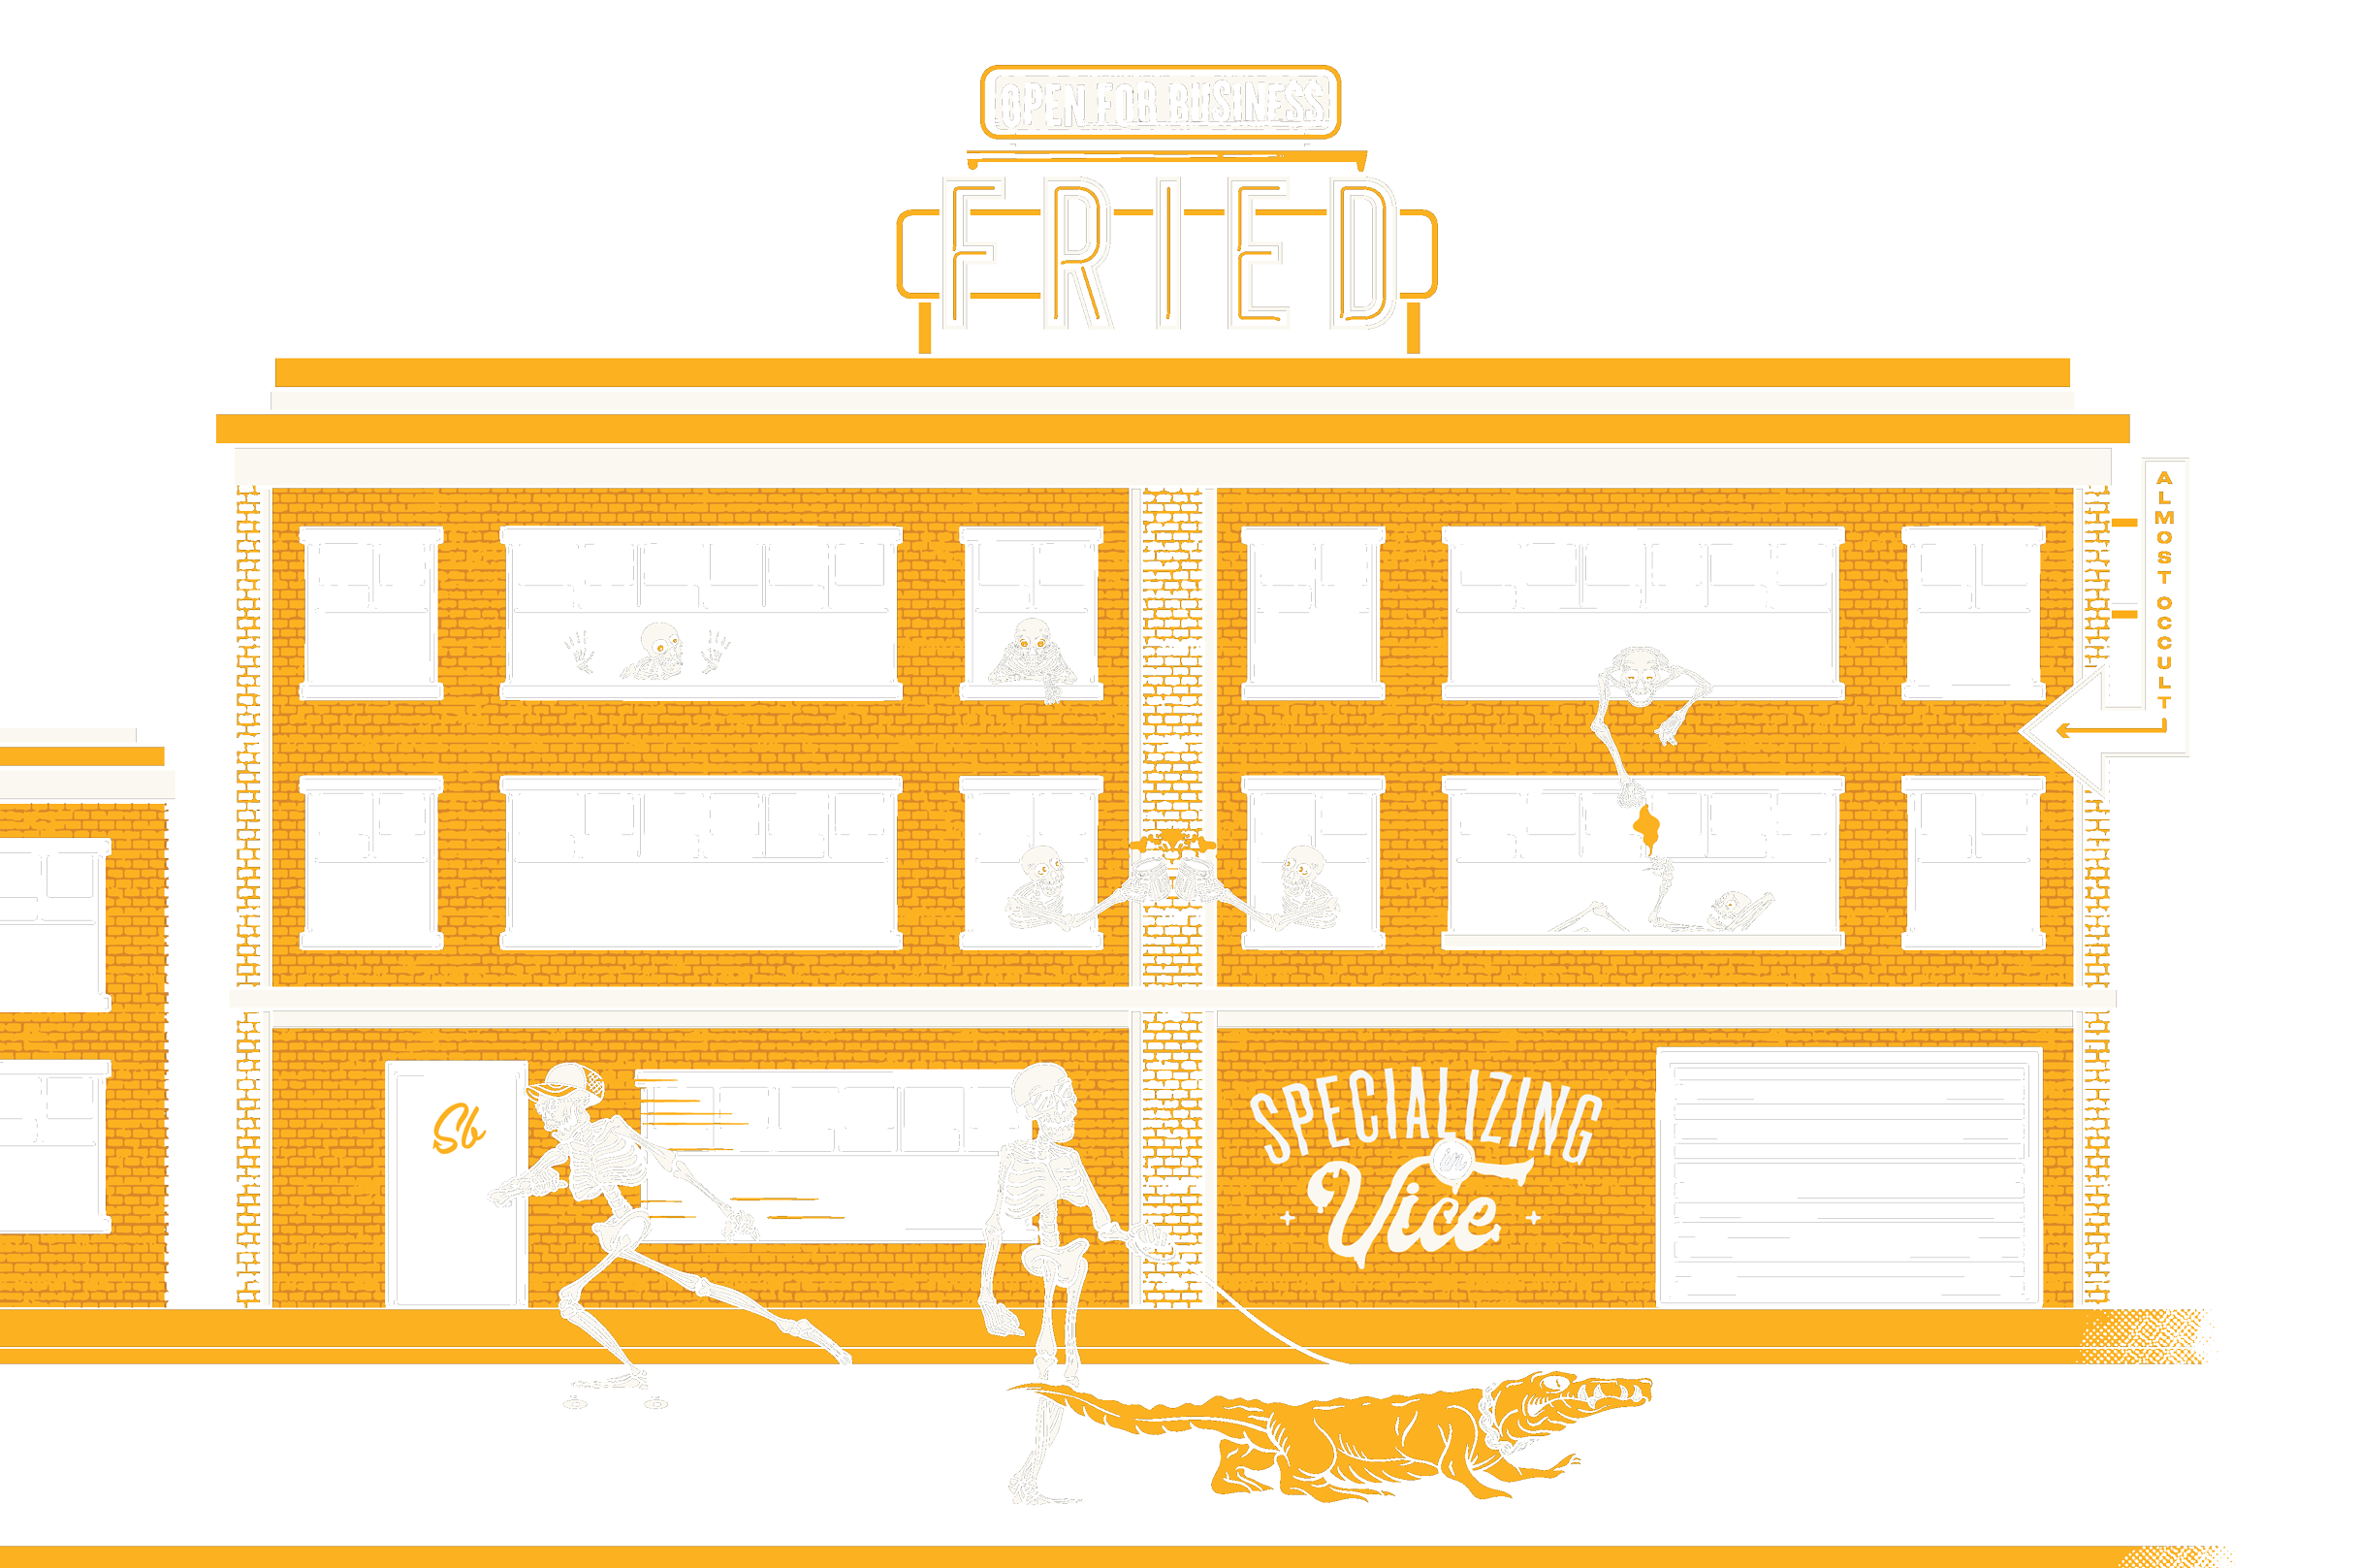 Fried Design Company - AN INDEPENDENT BRAND DESIGN STUDIO SPECIALIZING IN VICE